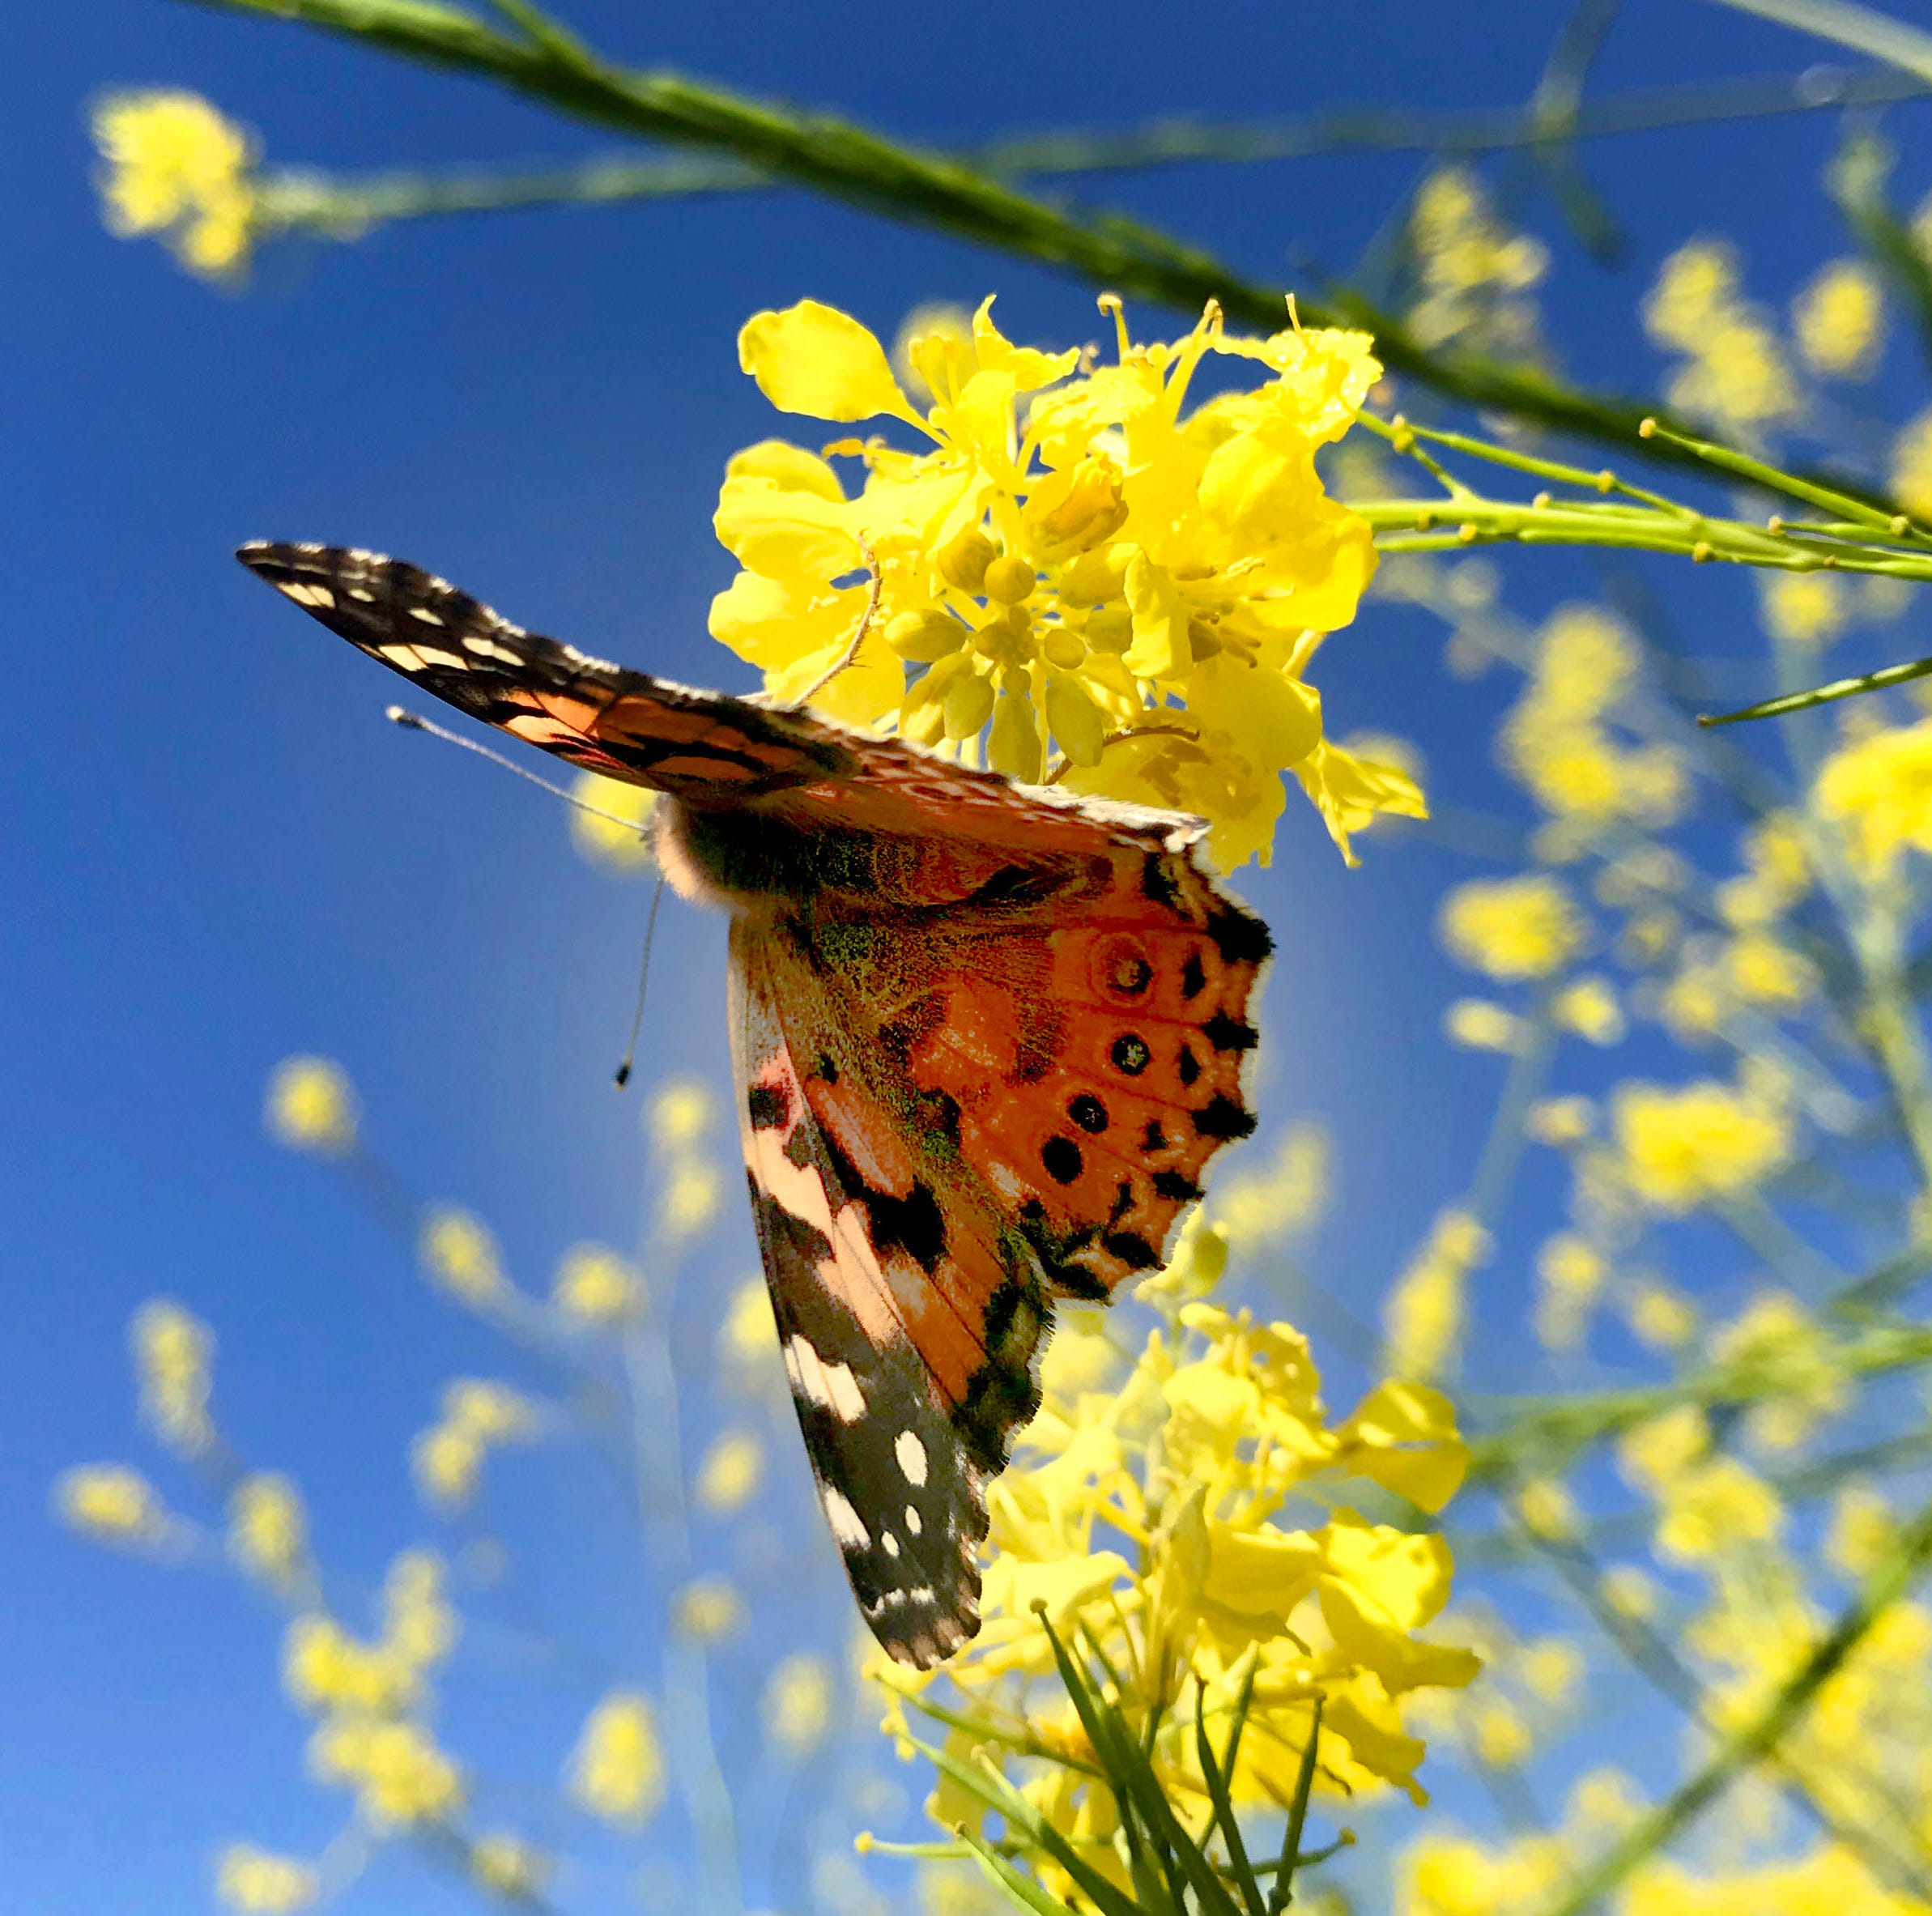 Why we're seeing wave after wave of butterflies in Ventura County